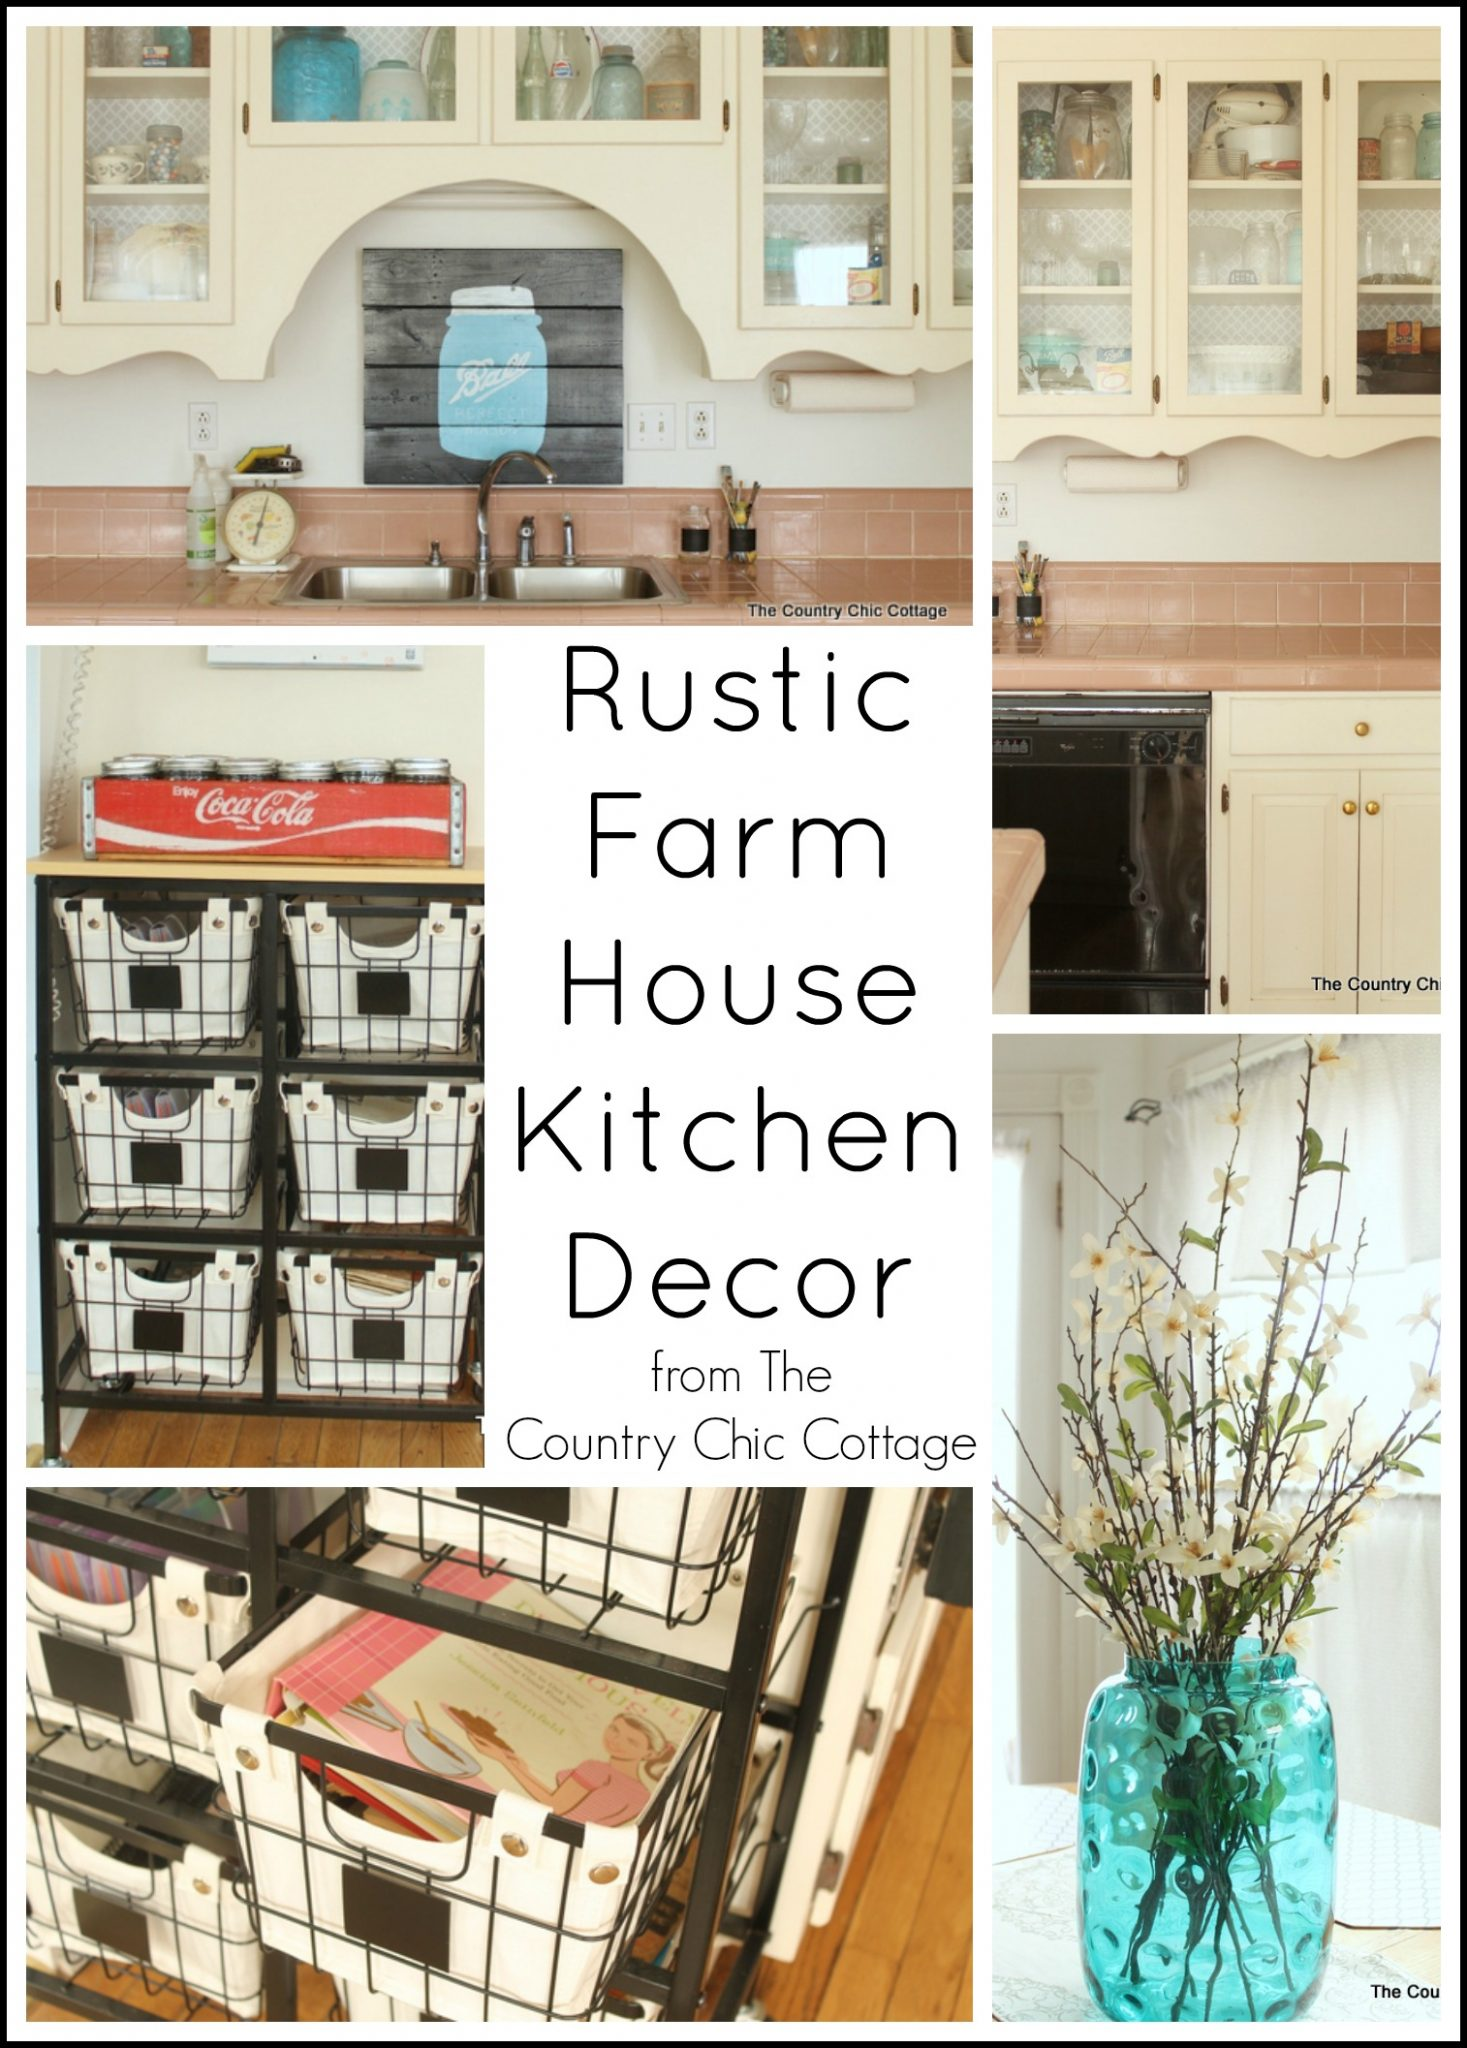 Farm Life Home Decor on Pinterest